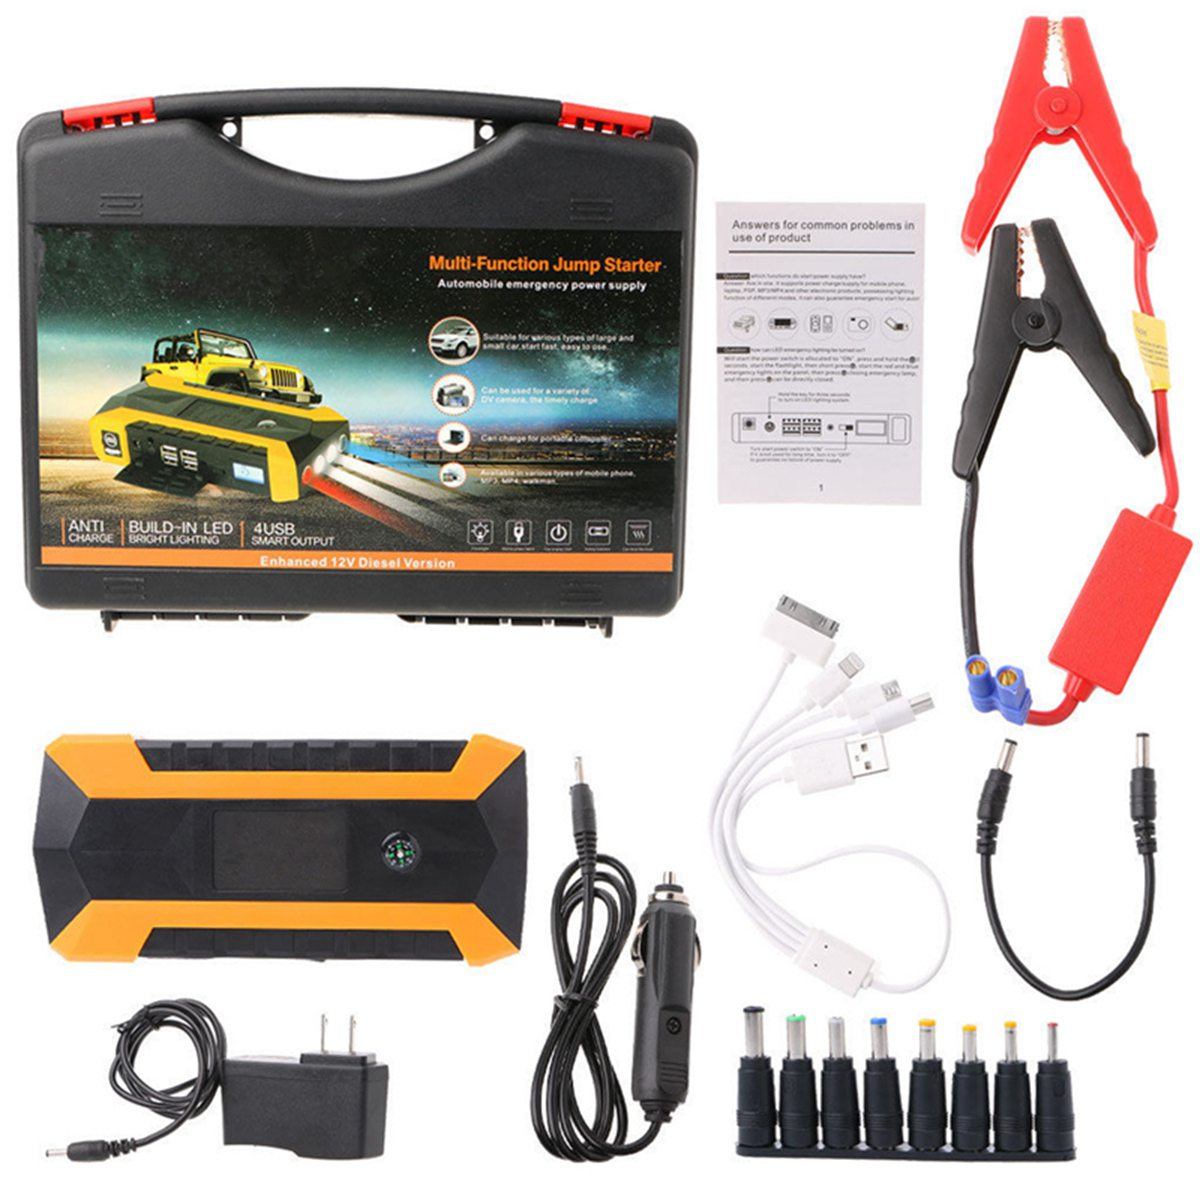 89800mAh Car Jump Starter 12V 4USB 600A Portable Car Battery Booster Charger Booster Power Bank Starting Device Car Starter 89800mah car jump starter 12v 4usb 600a portable car battery booster charger booster power bank starting device car starter